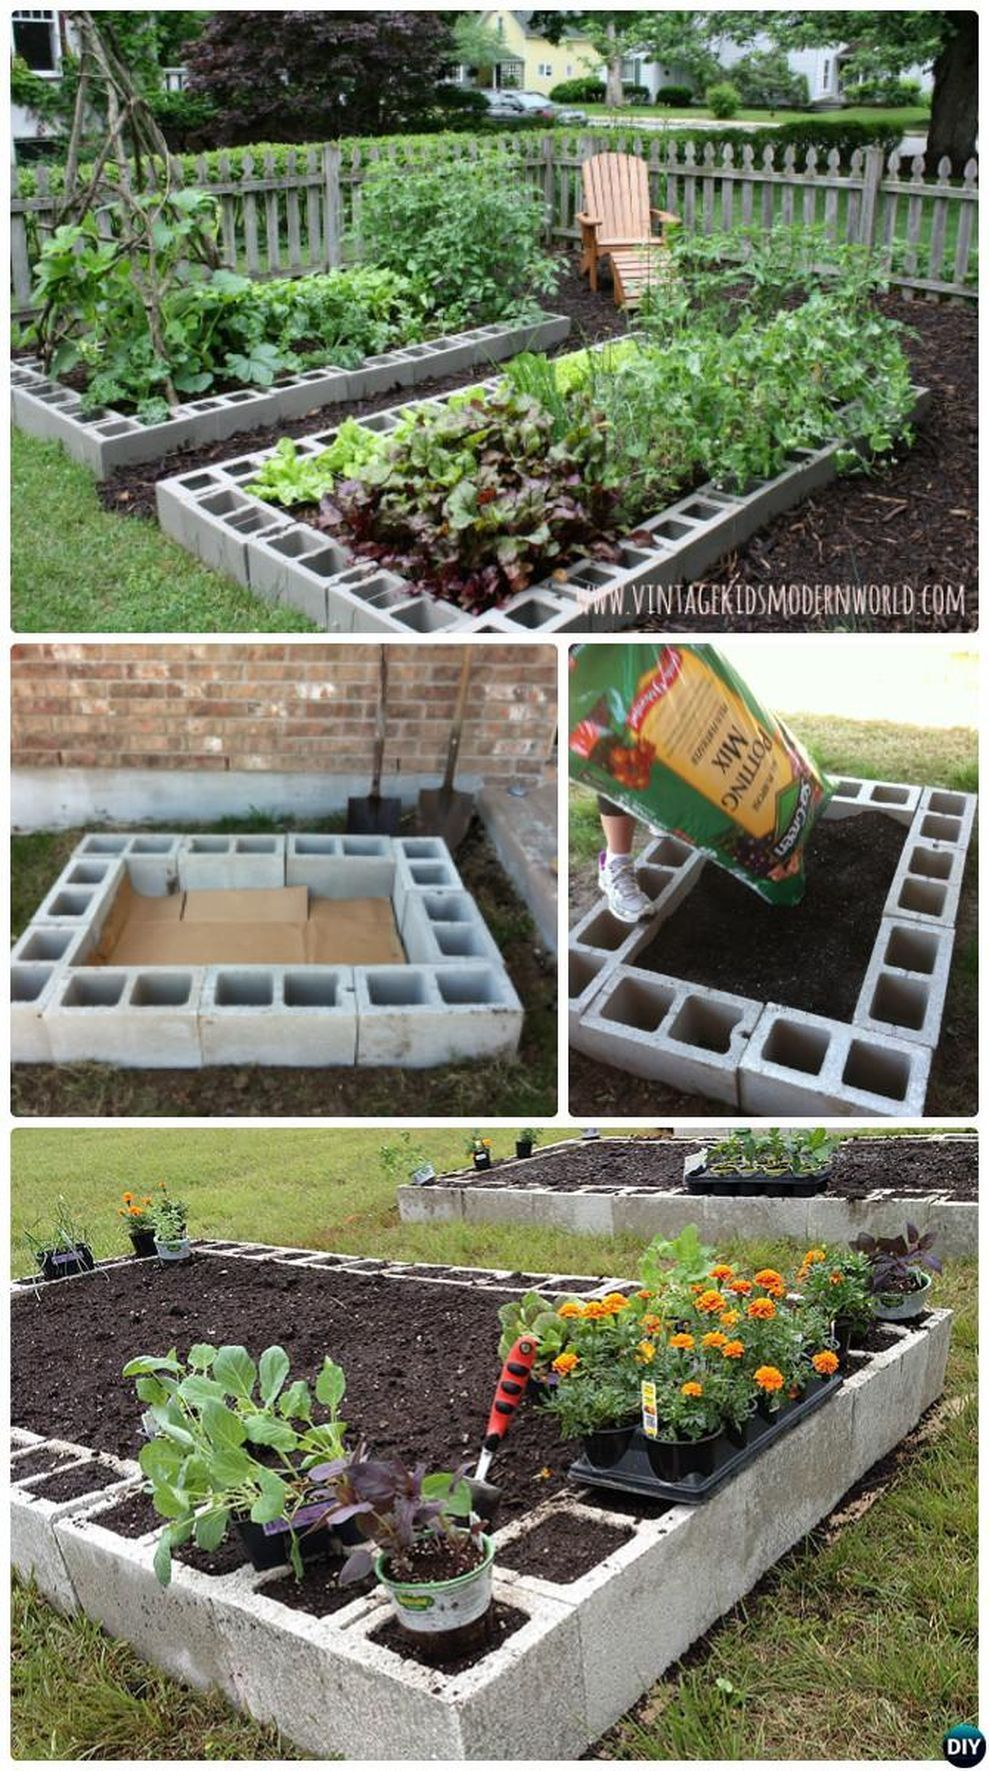 Vegetable Garden Idea affordable backyard vegetable garden designs ideas 37 eastern wa back yard  patio decorating ideas affordable backyard